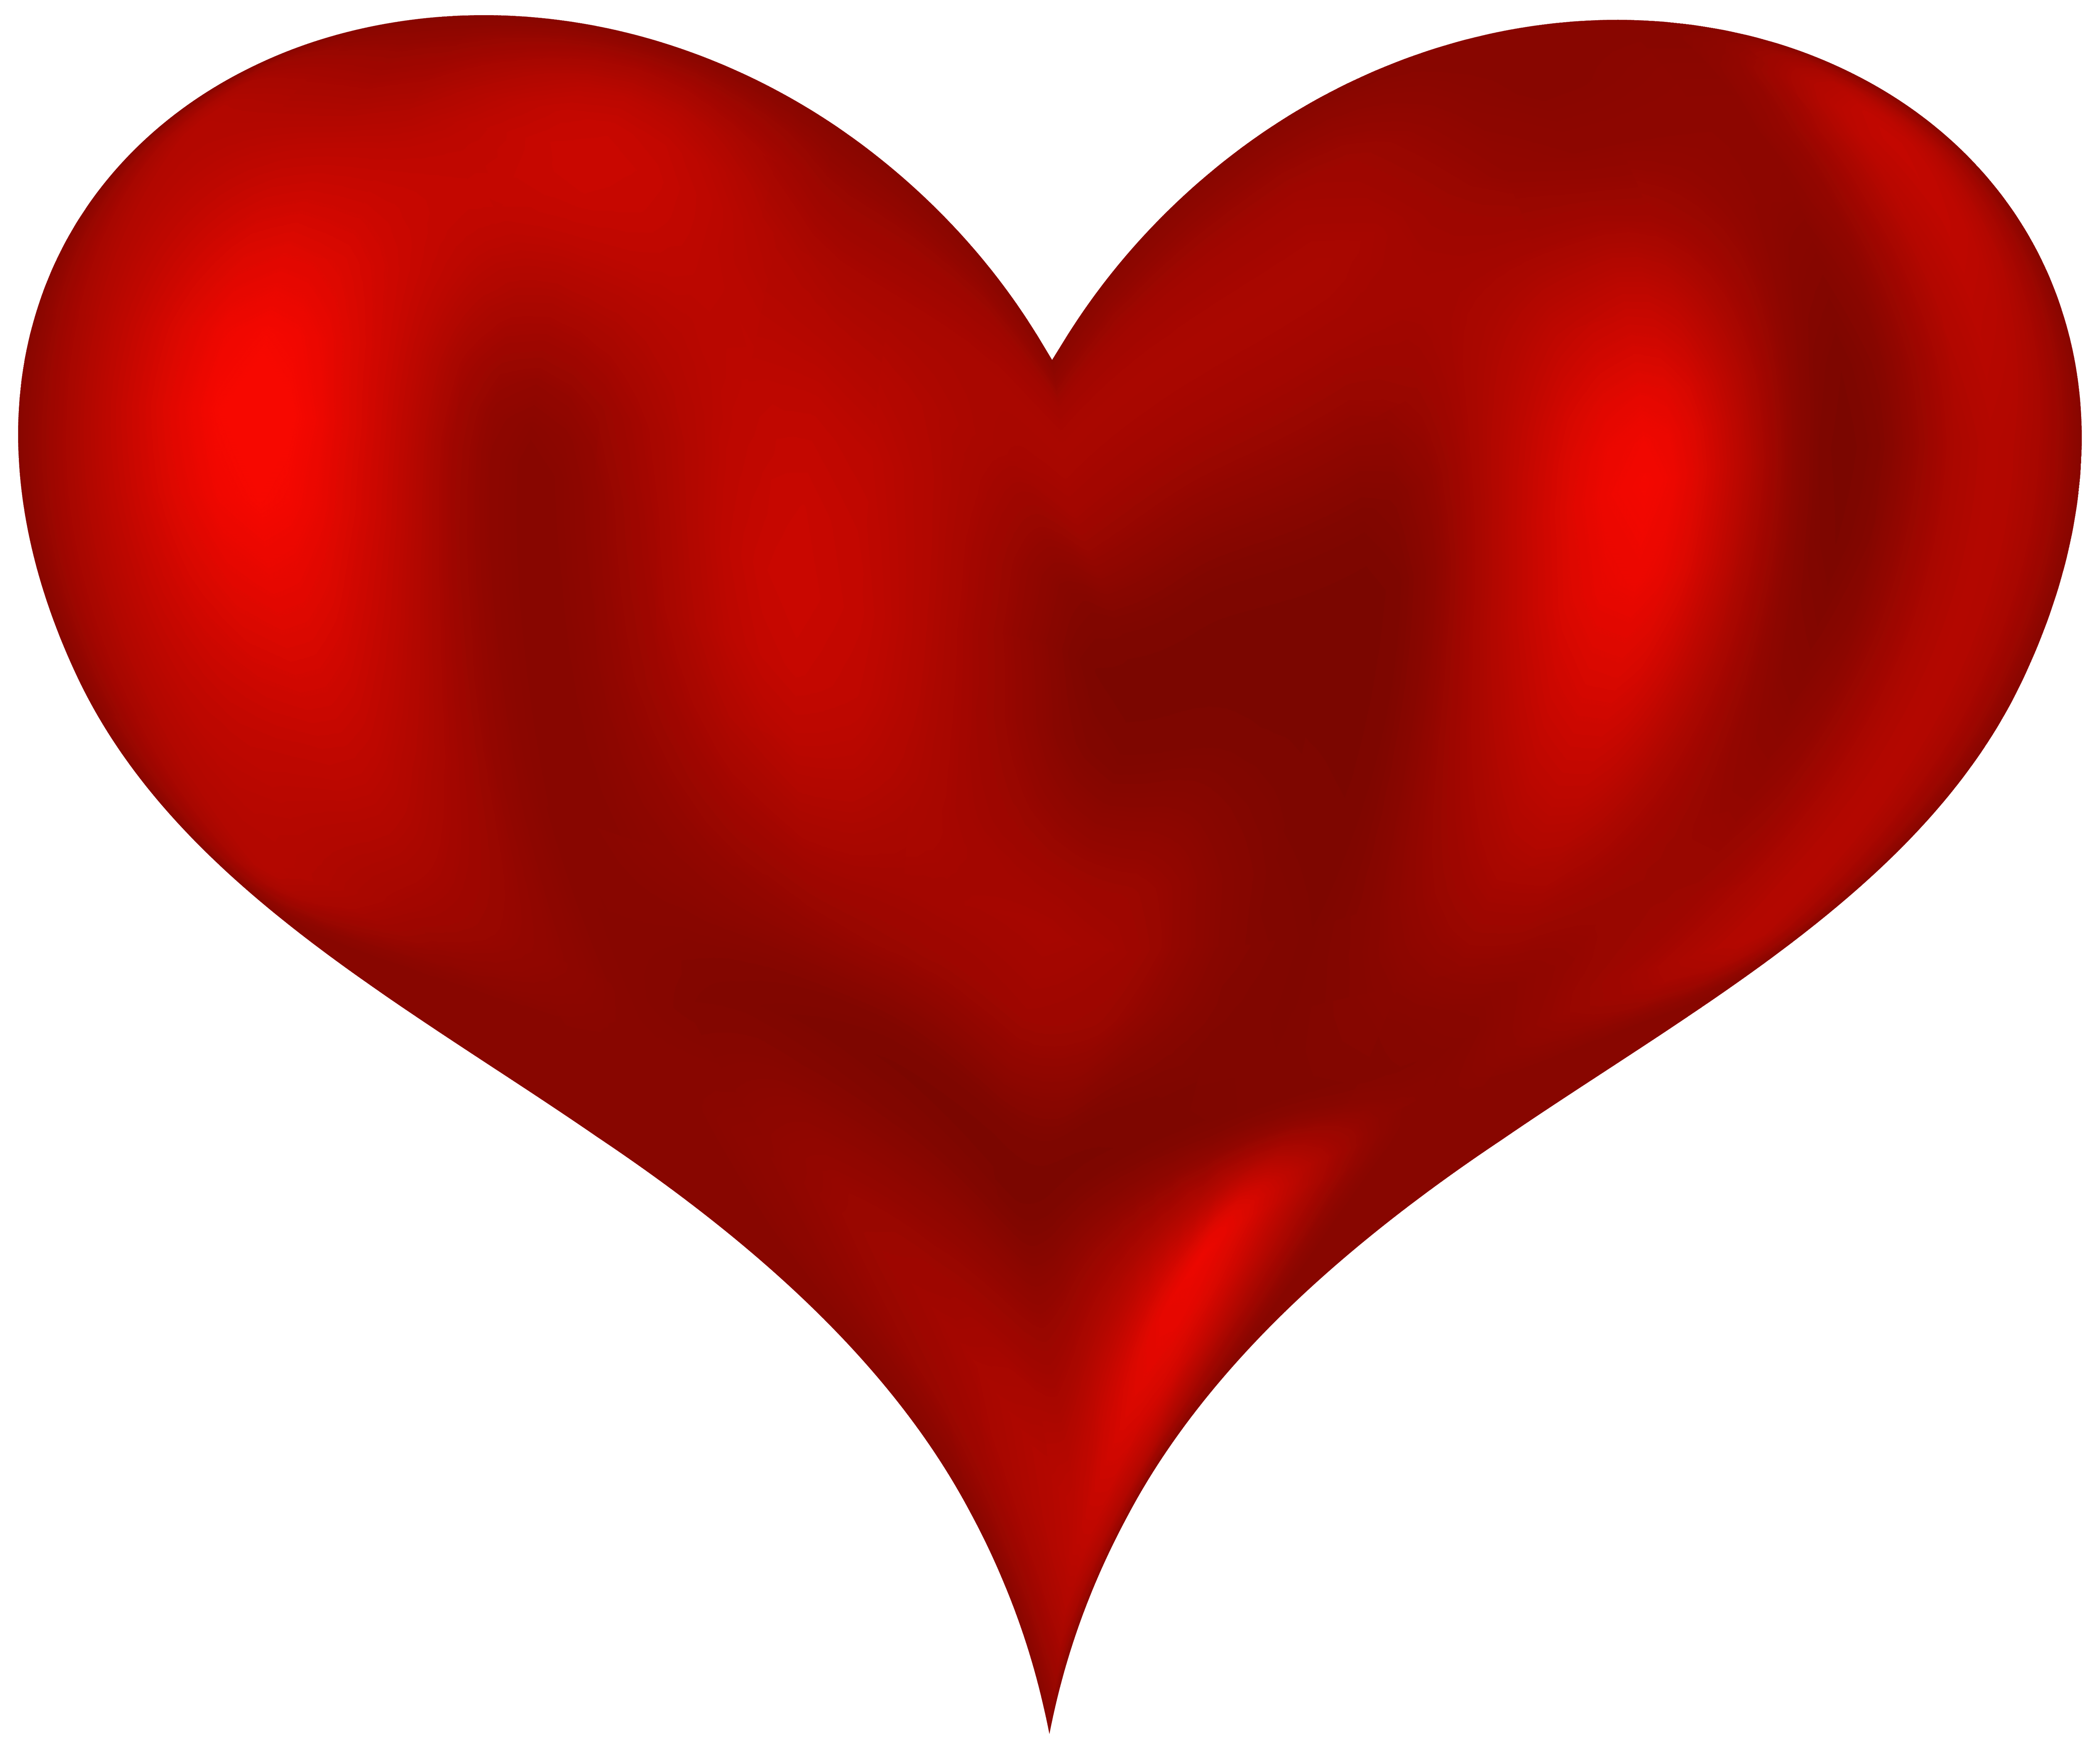 Beautiful heart png . Heartbeat clipart red